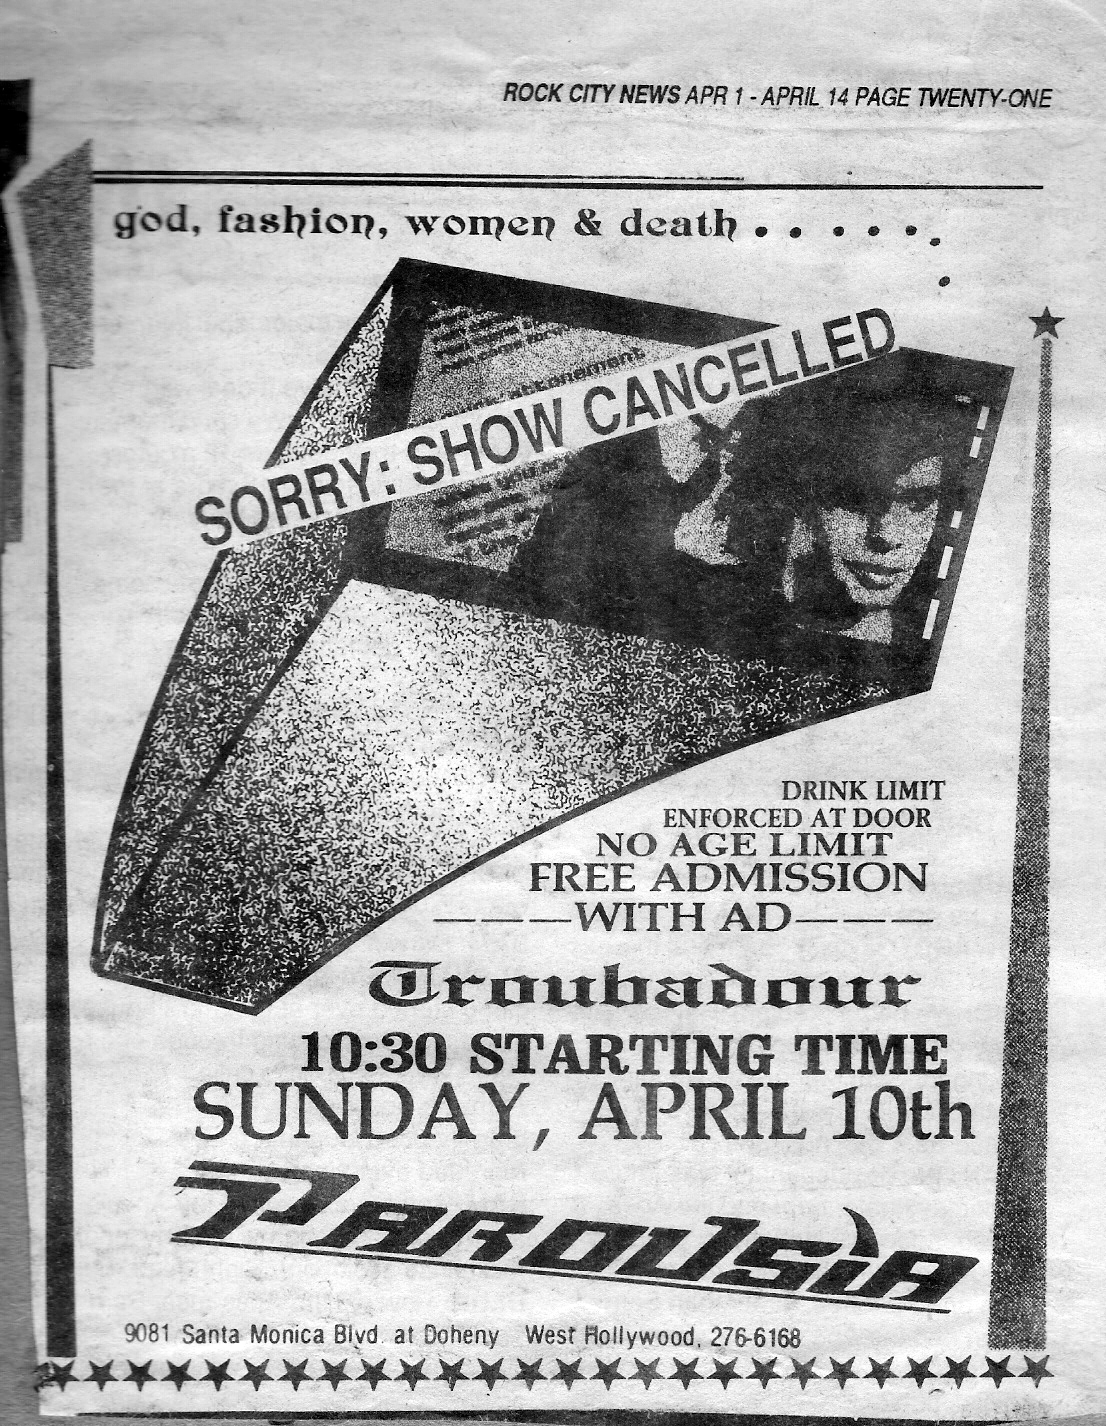 Rock City News cancellation ad - April 01 – April 14 1988